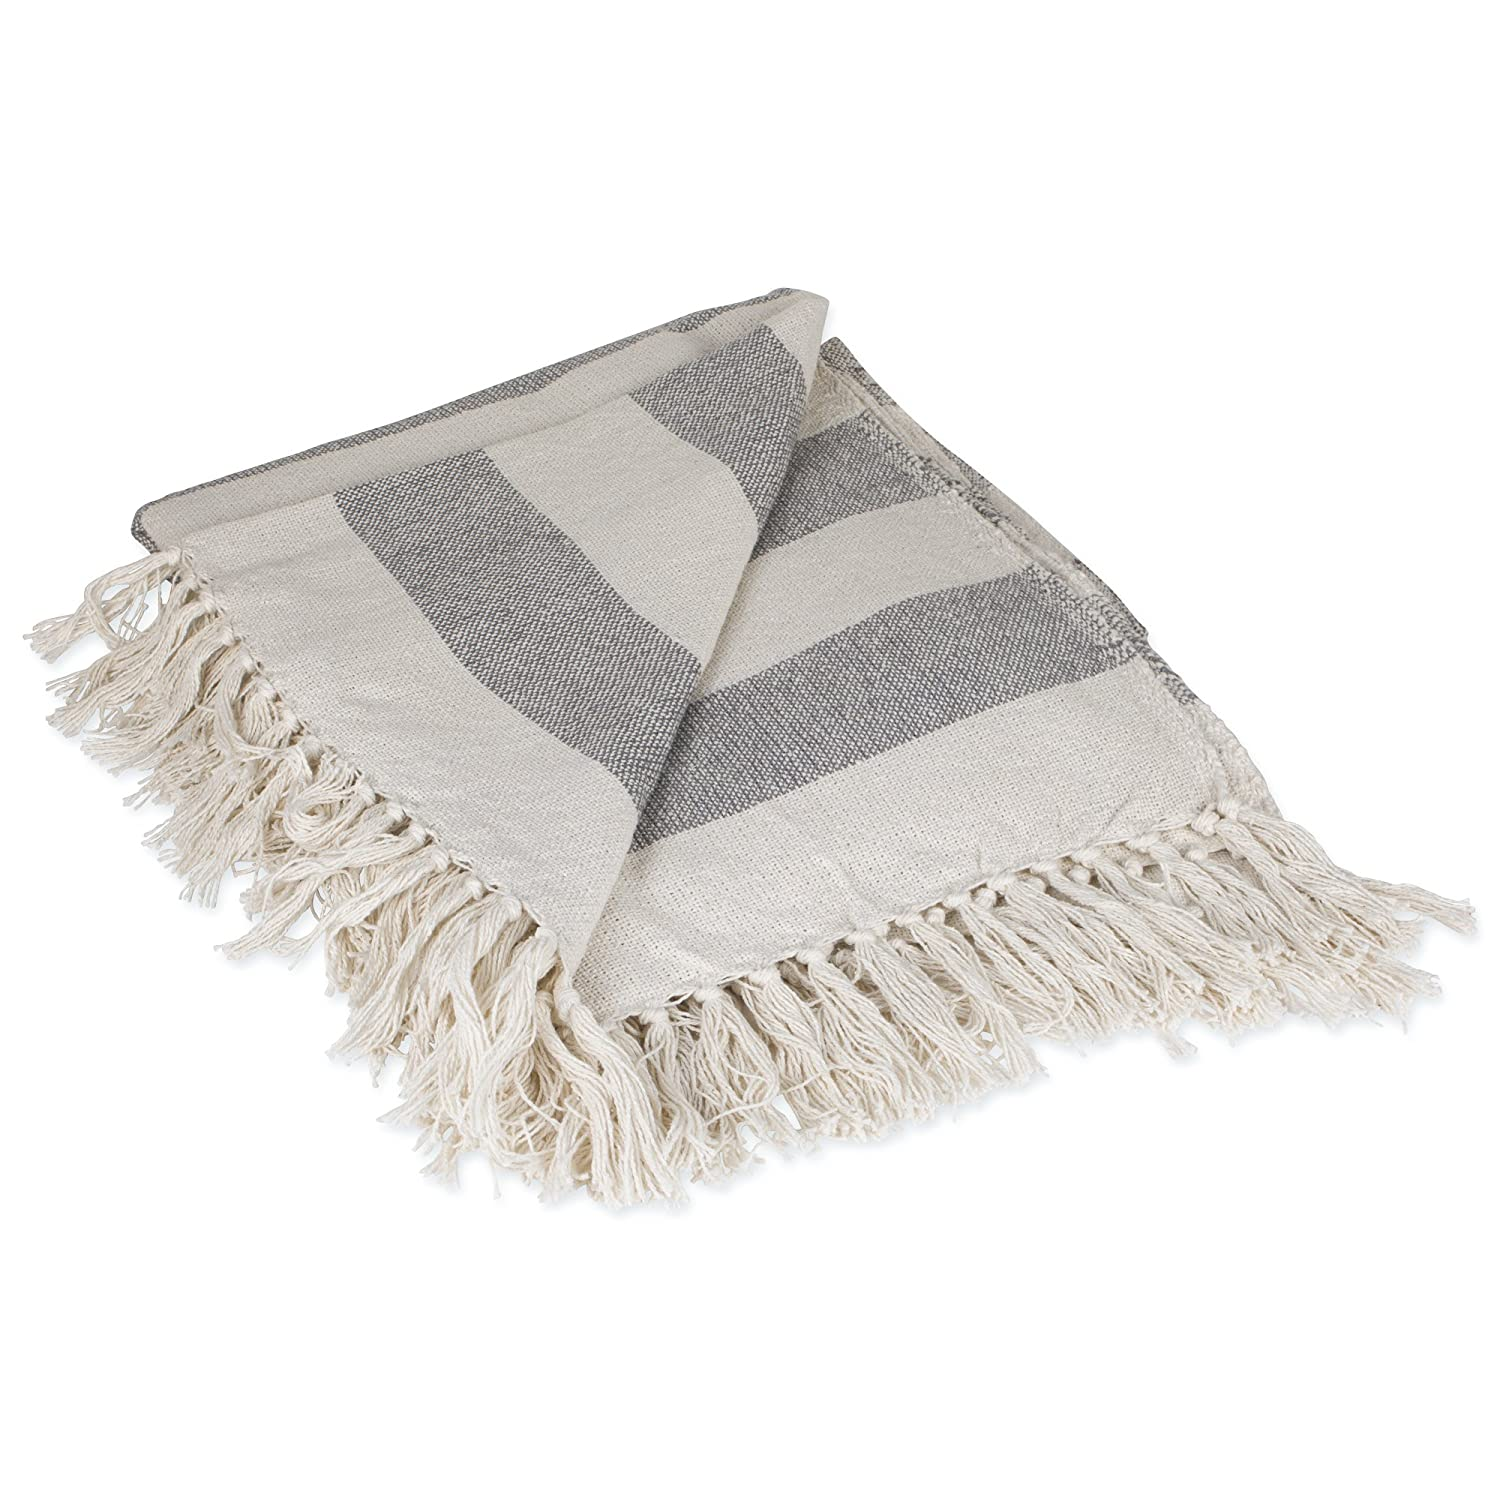 """DII Rustic Farmhouse Cotton Cabana Striped Blanket Throw with Fringe For Chair, Couch, Picnic, Camping, Beach, & Everyday Use, 50 x 60"""" - Cabana Striped Gray"""